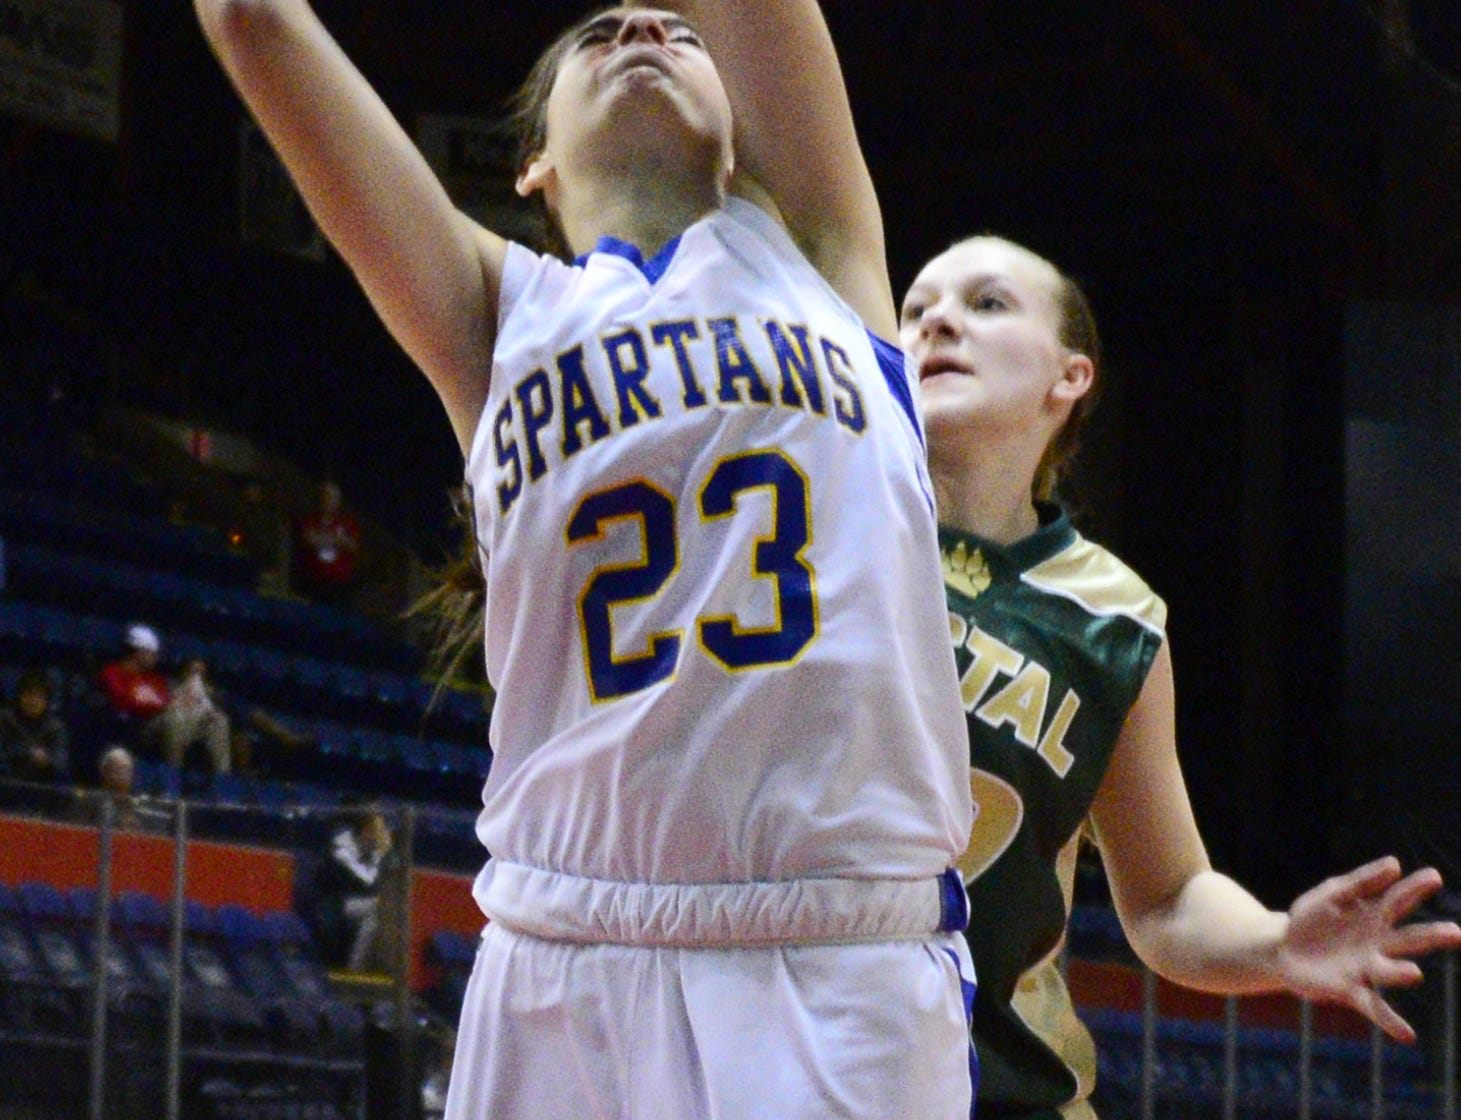 2013: Maine-Endwell's Carla Spera shoots in front of Vestal's Jen Shelp in the Section 4 Class A championship game Friday night at the Broome County Veterans Memorial Arena. The Spartans claimed the title with a 58-49 victory.